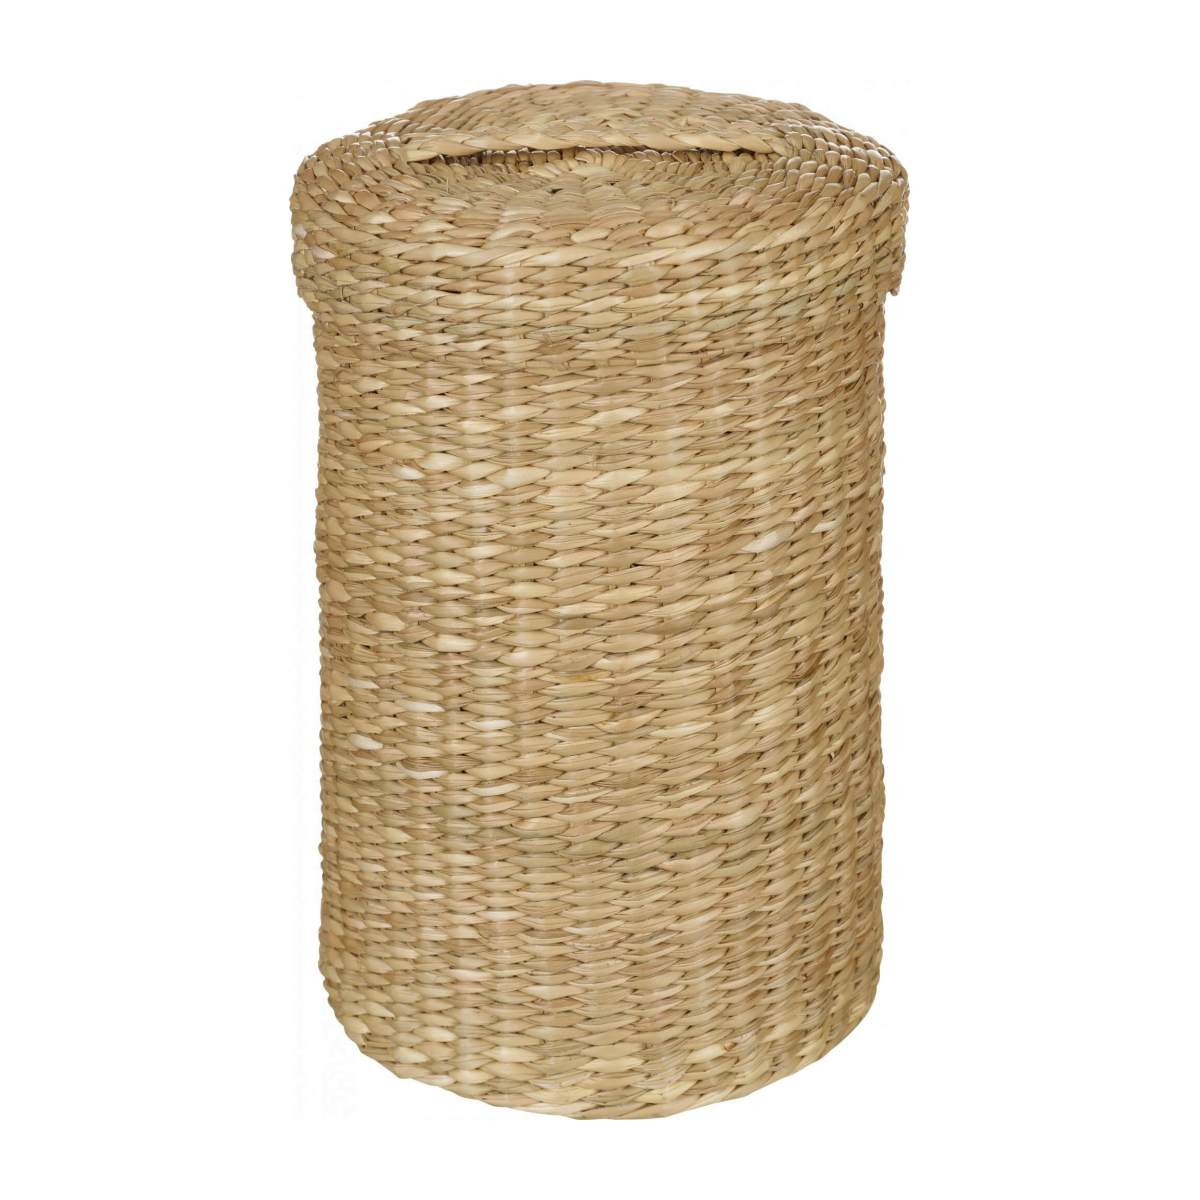 Seagrass Mini Baskets with lids n°1